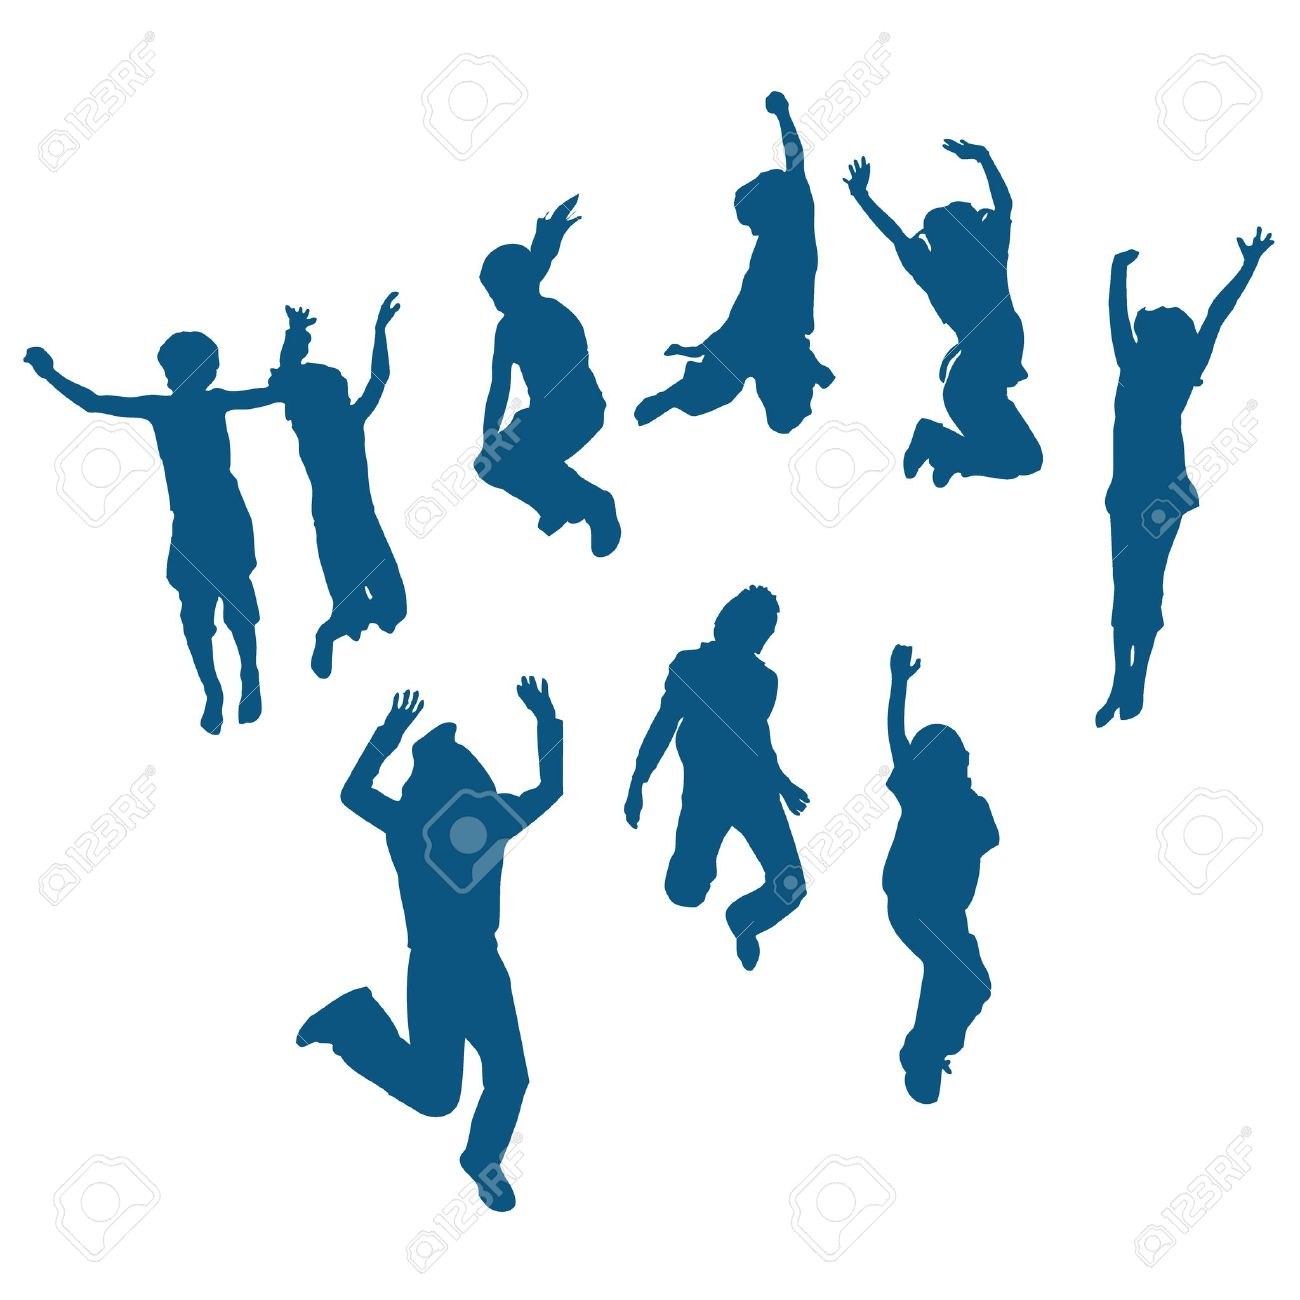 Kids jumping silhouette